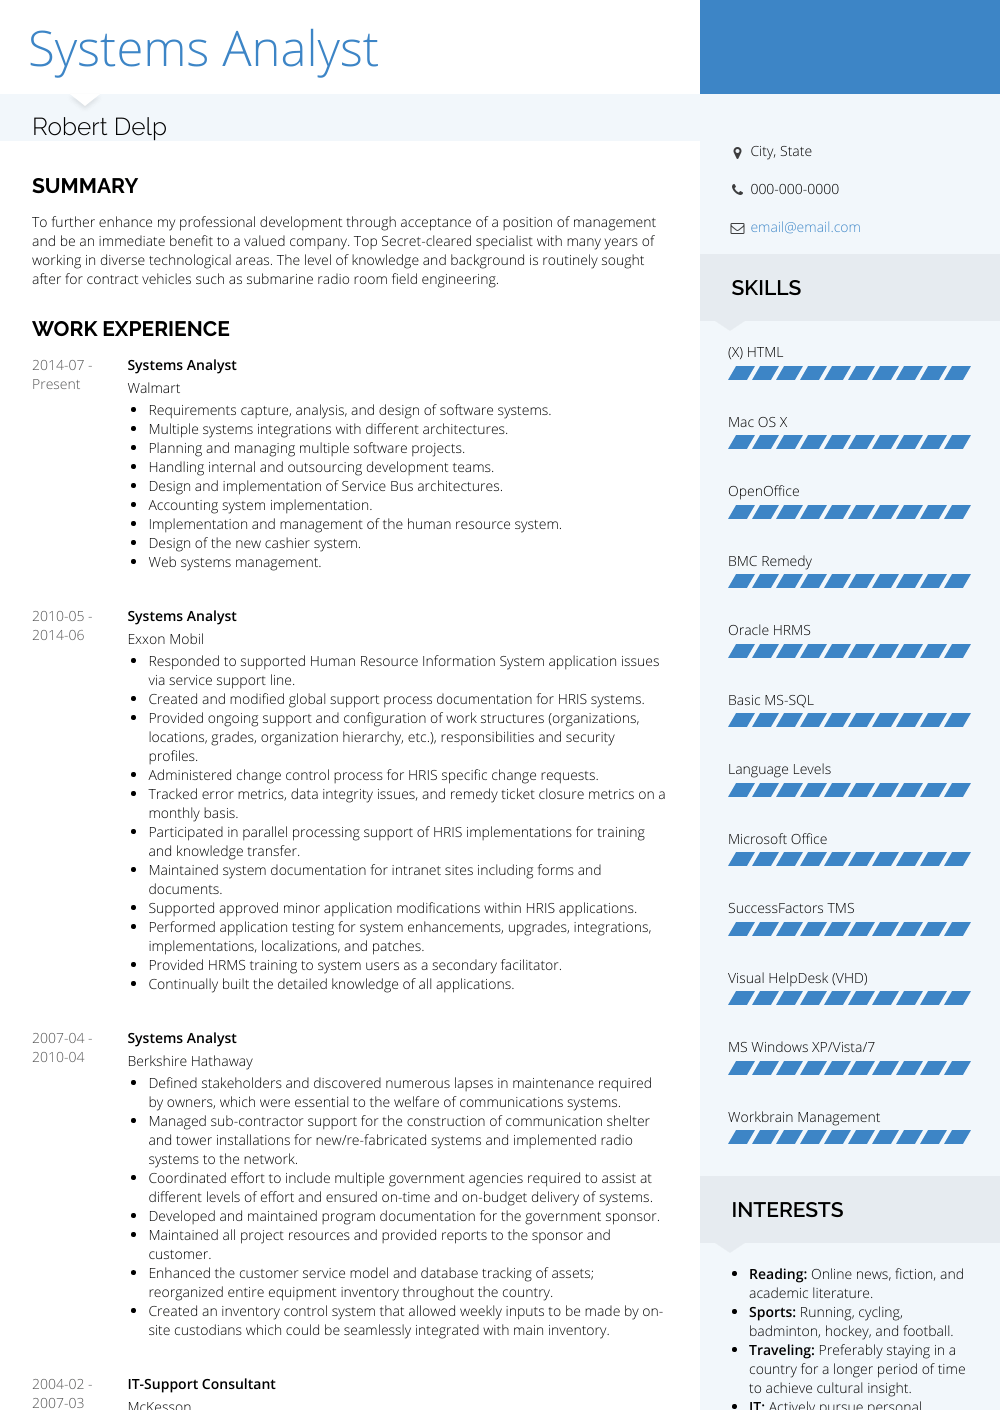 Systems Analyst Resume Sample and Template